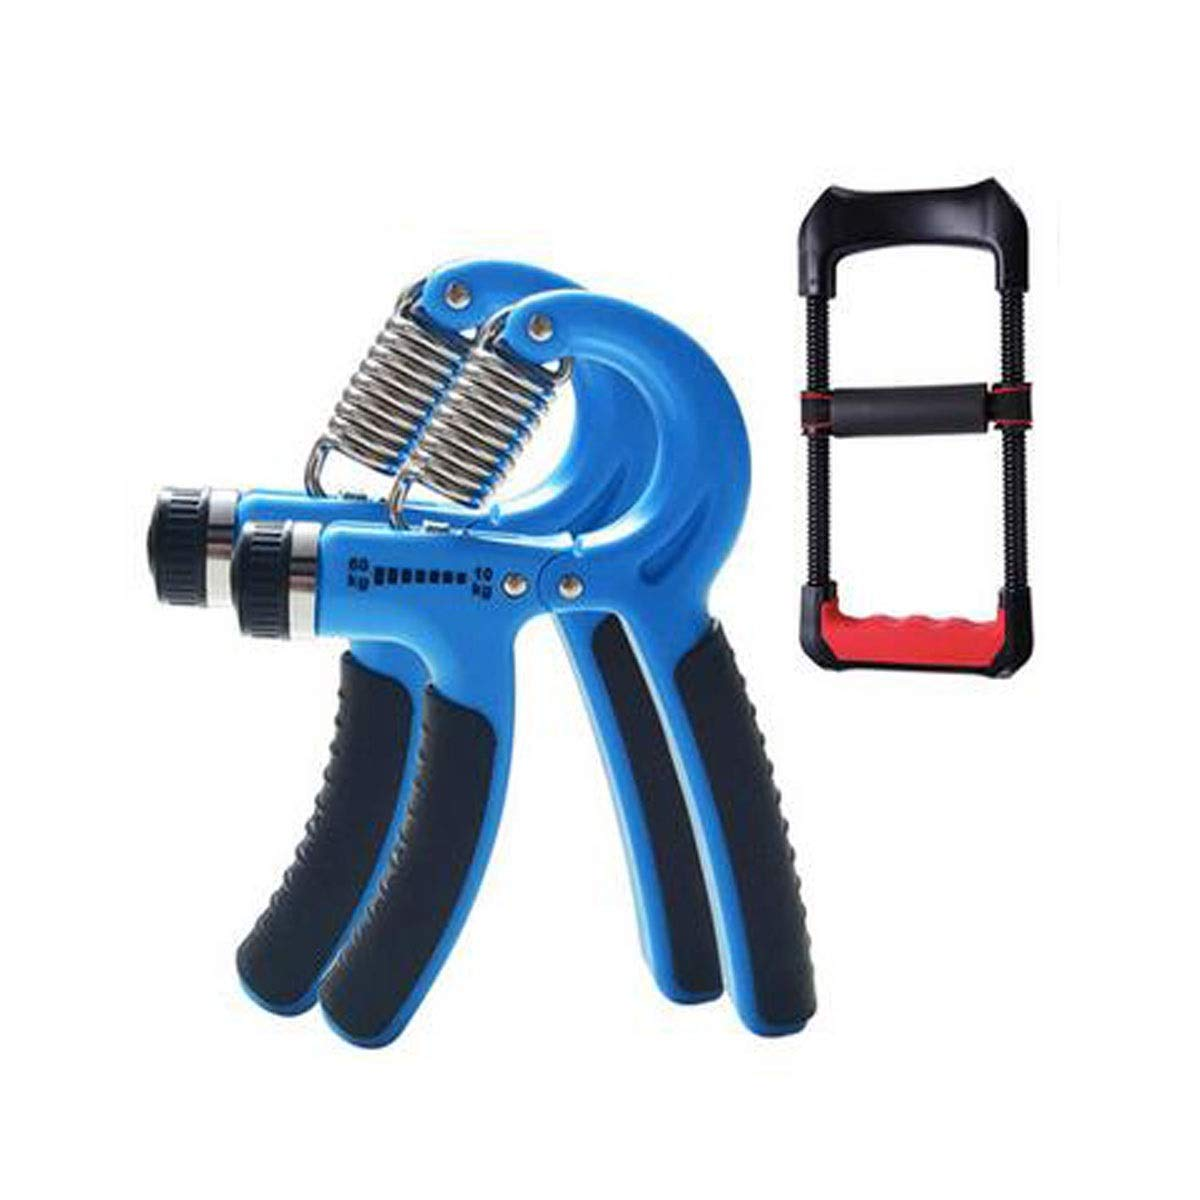 Jiansheng Hand Grip, Professional Training Hand Man's Training Arm Muscle Rehabilitation Training Finger Strength Wrist Strength Fitness Device, Red Color (3 Piece Suit) (Color : Blue)